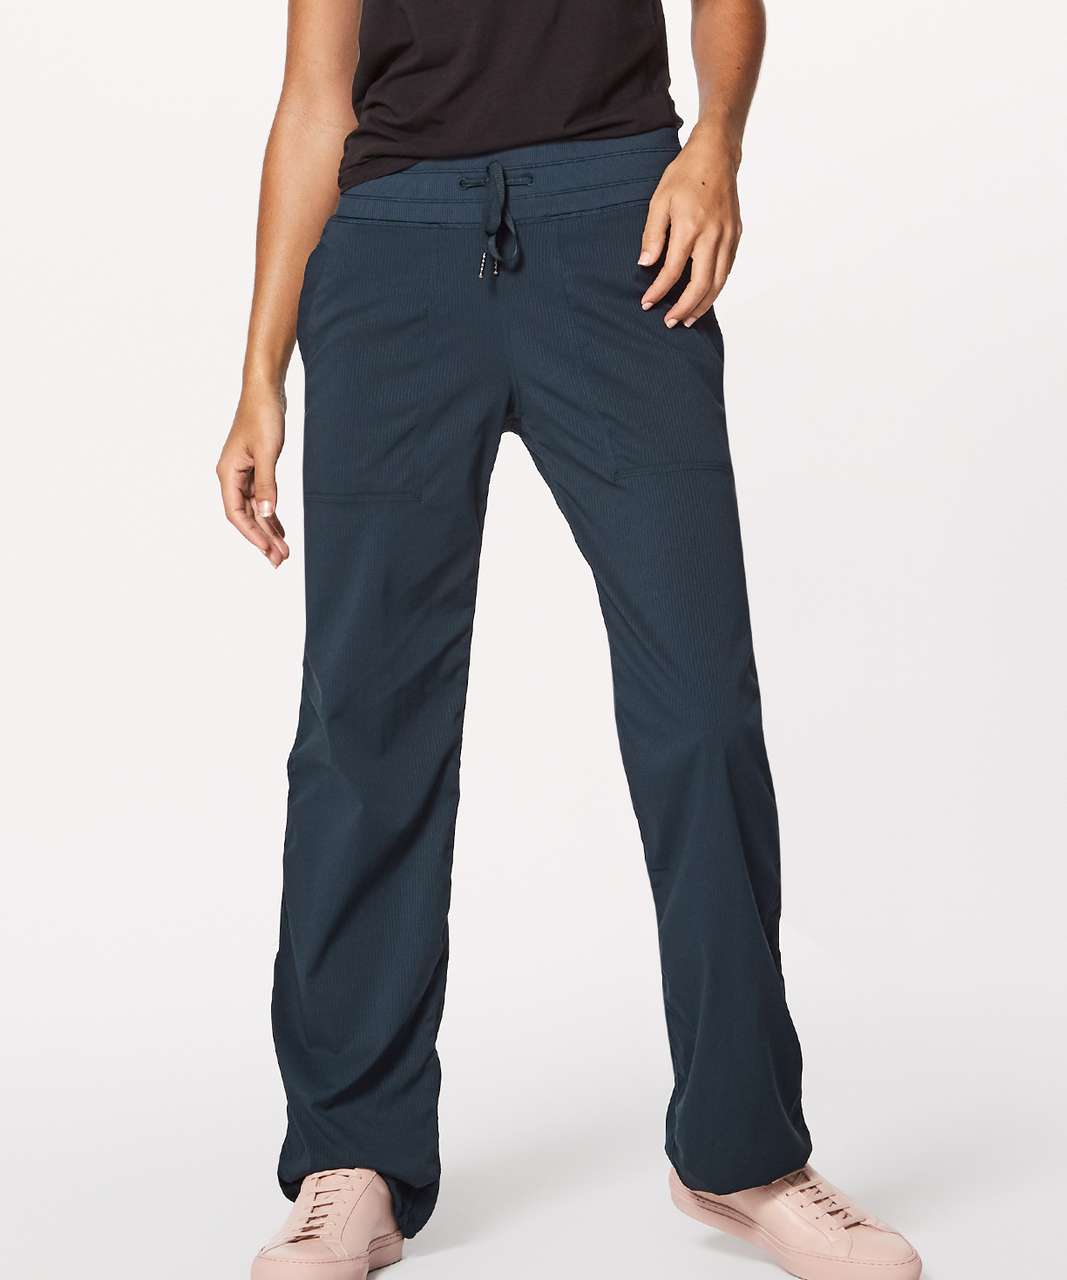 e46fefa7ff6 Lululemon Dance Studio Pant III (Regular) *Unlined - Nocturnal Teal - lulu  fanatics